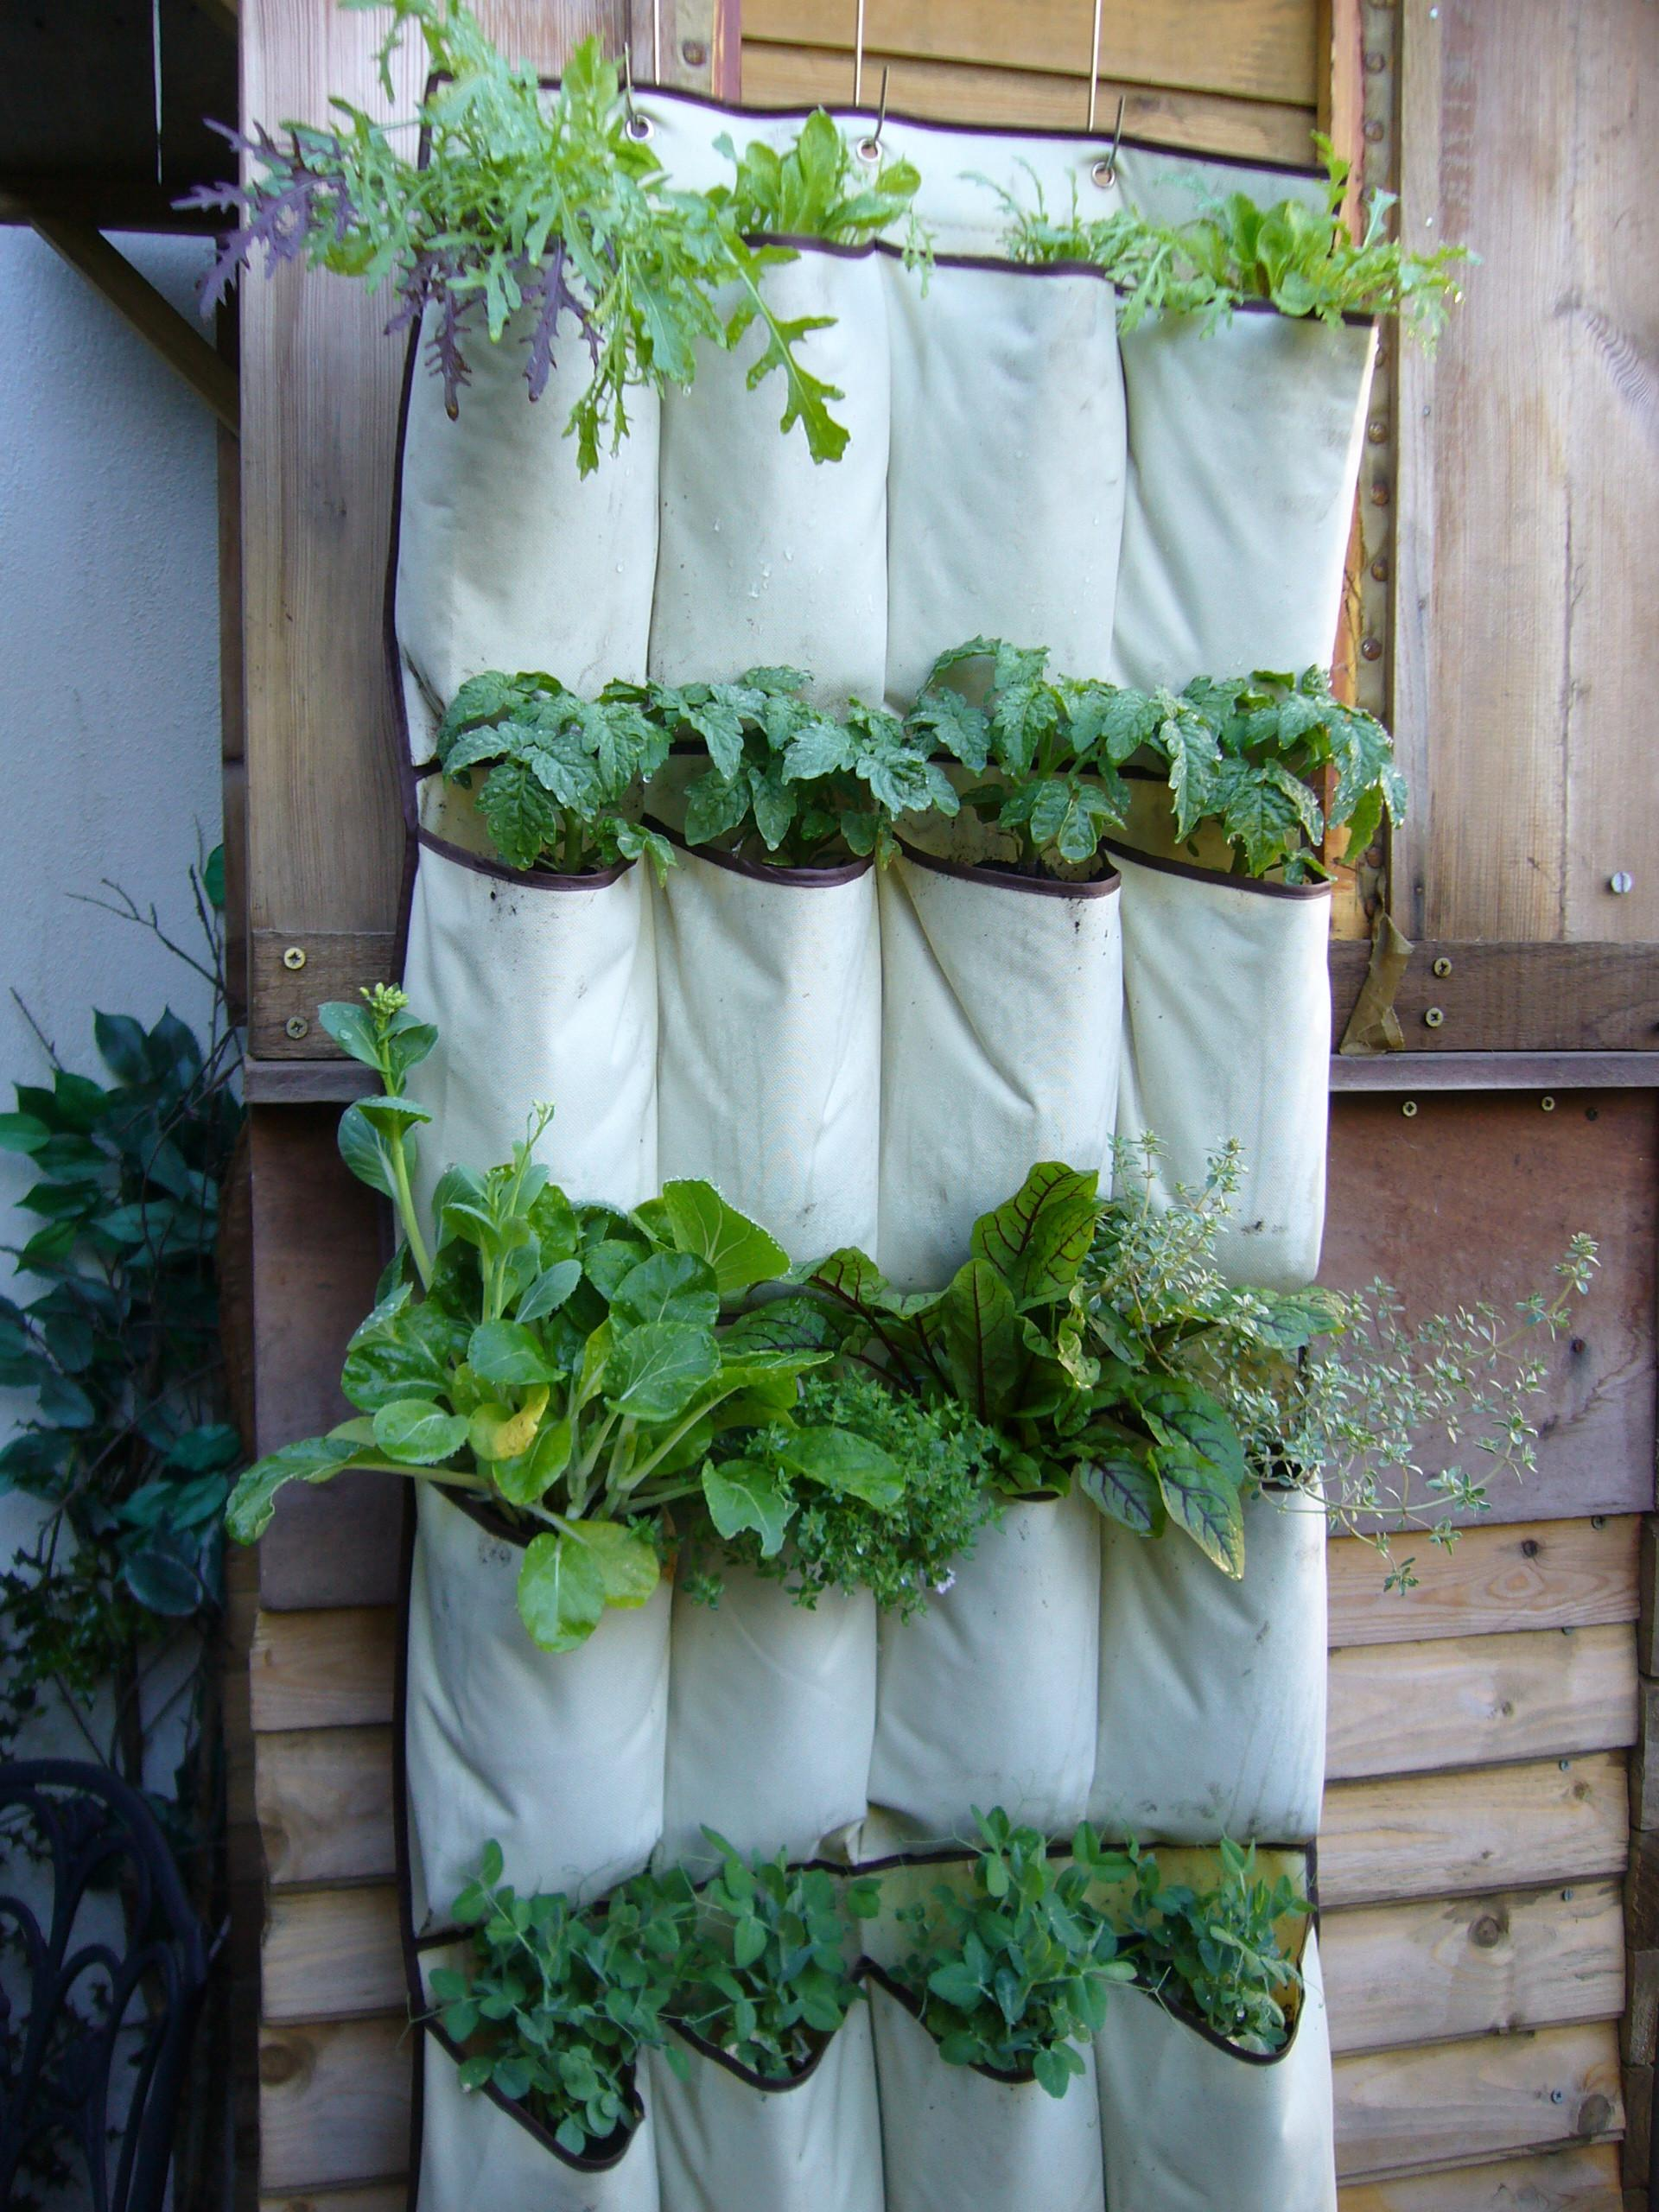 Diy Hanging Planters Fences Recycled White Fabric